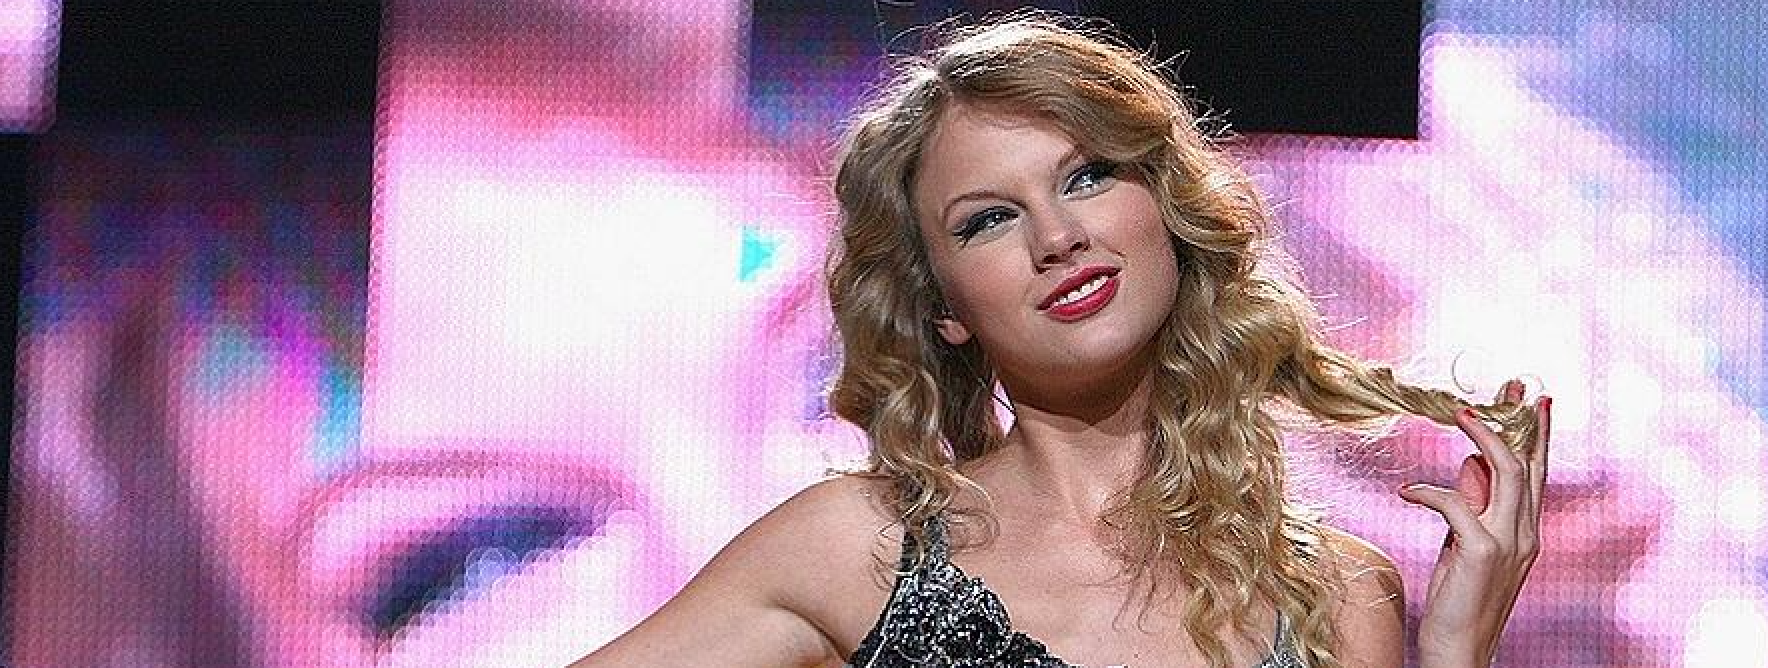 Taylor Swift al primo posto della classifica U.S., UK, Canada, Australia